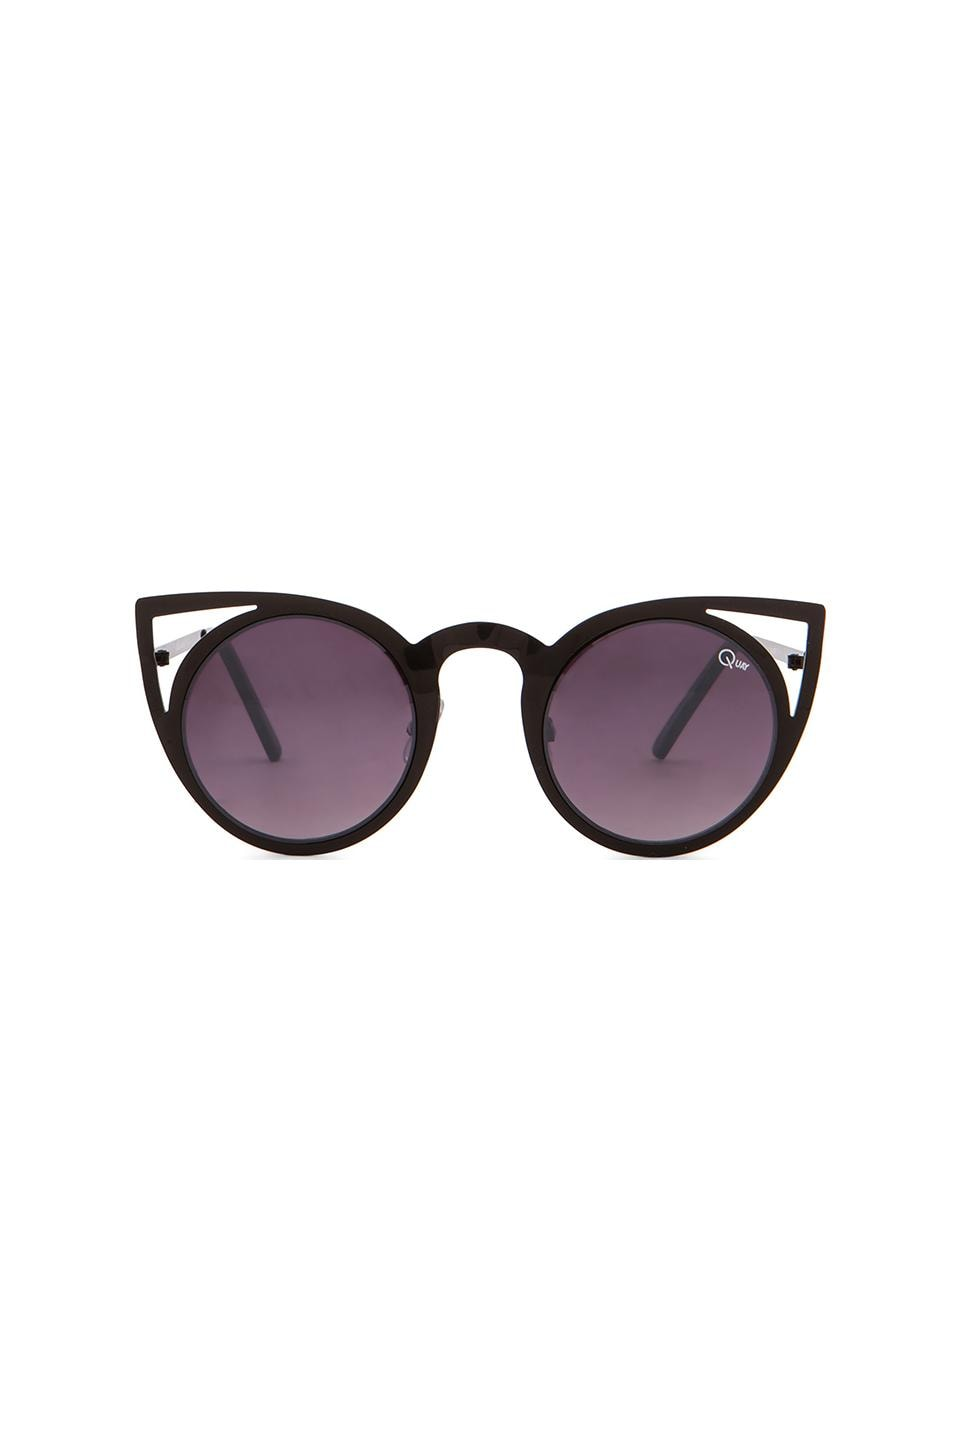 Quay Invader Sunglasses in Black